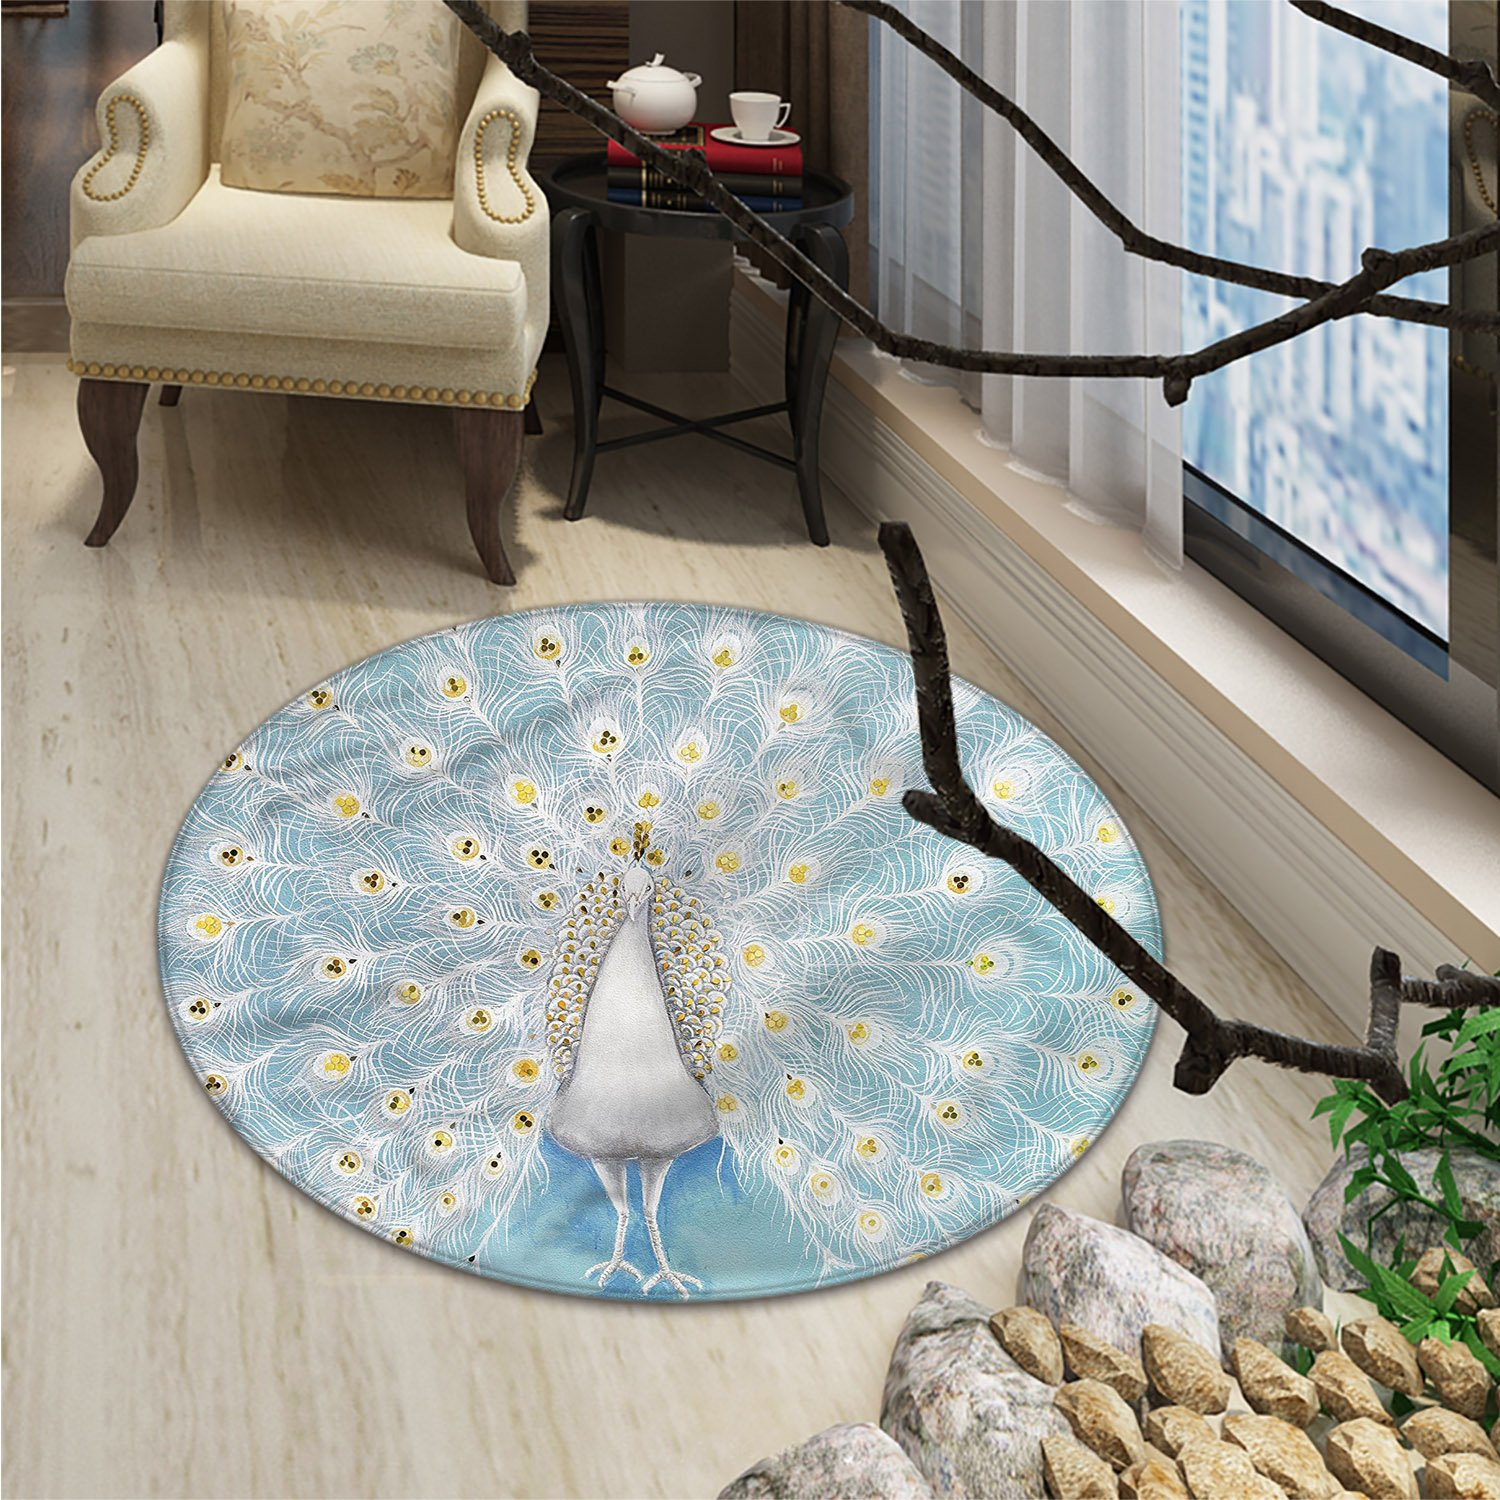 Peacock Round Rugs for Bedroom Peacock Pattern on the Wall Nature Colorful Stylish Ornate Artwork PrintOriental Floor and Carpets Yellow Pale Blue